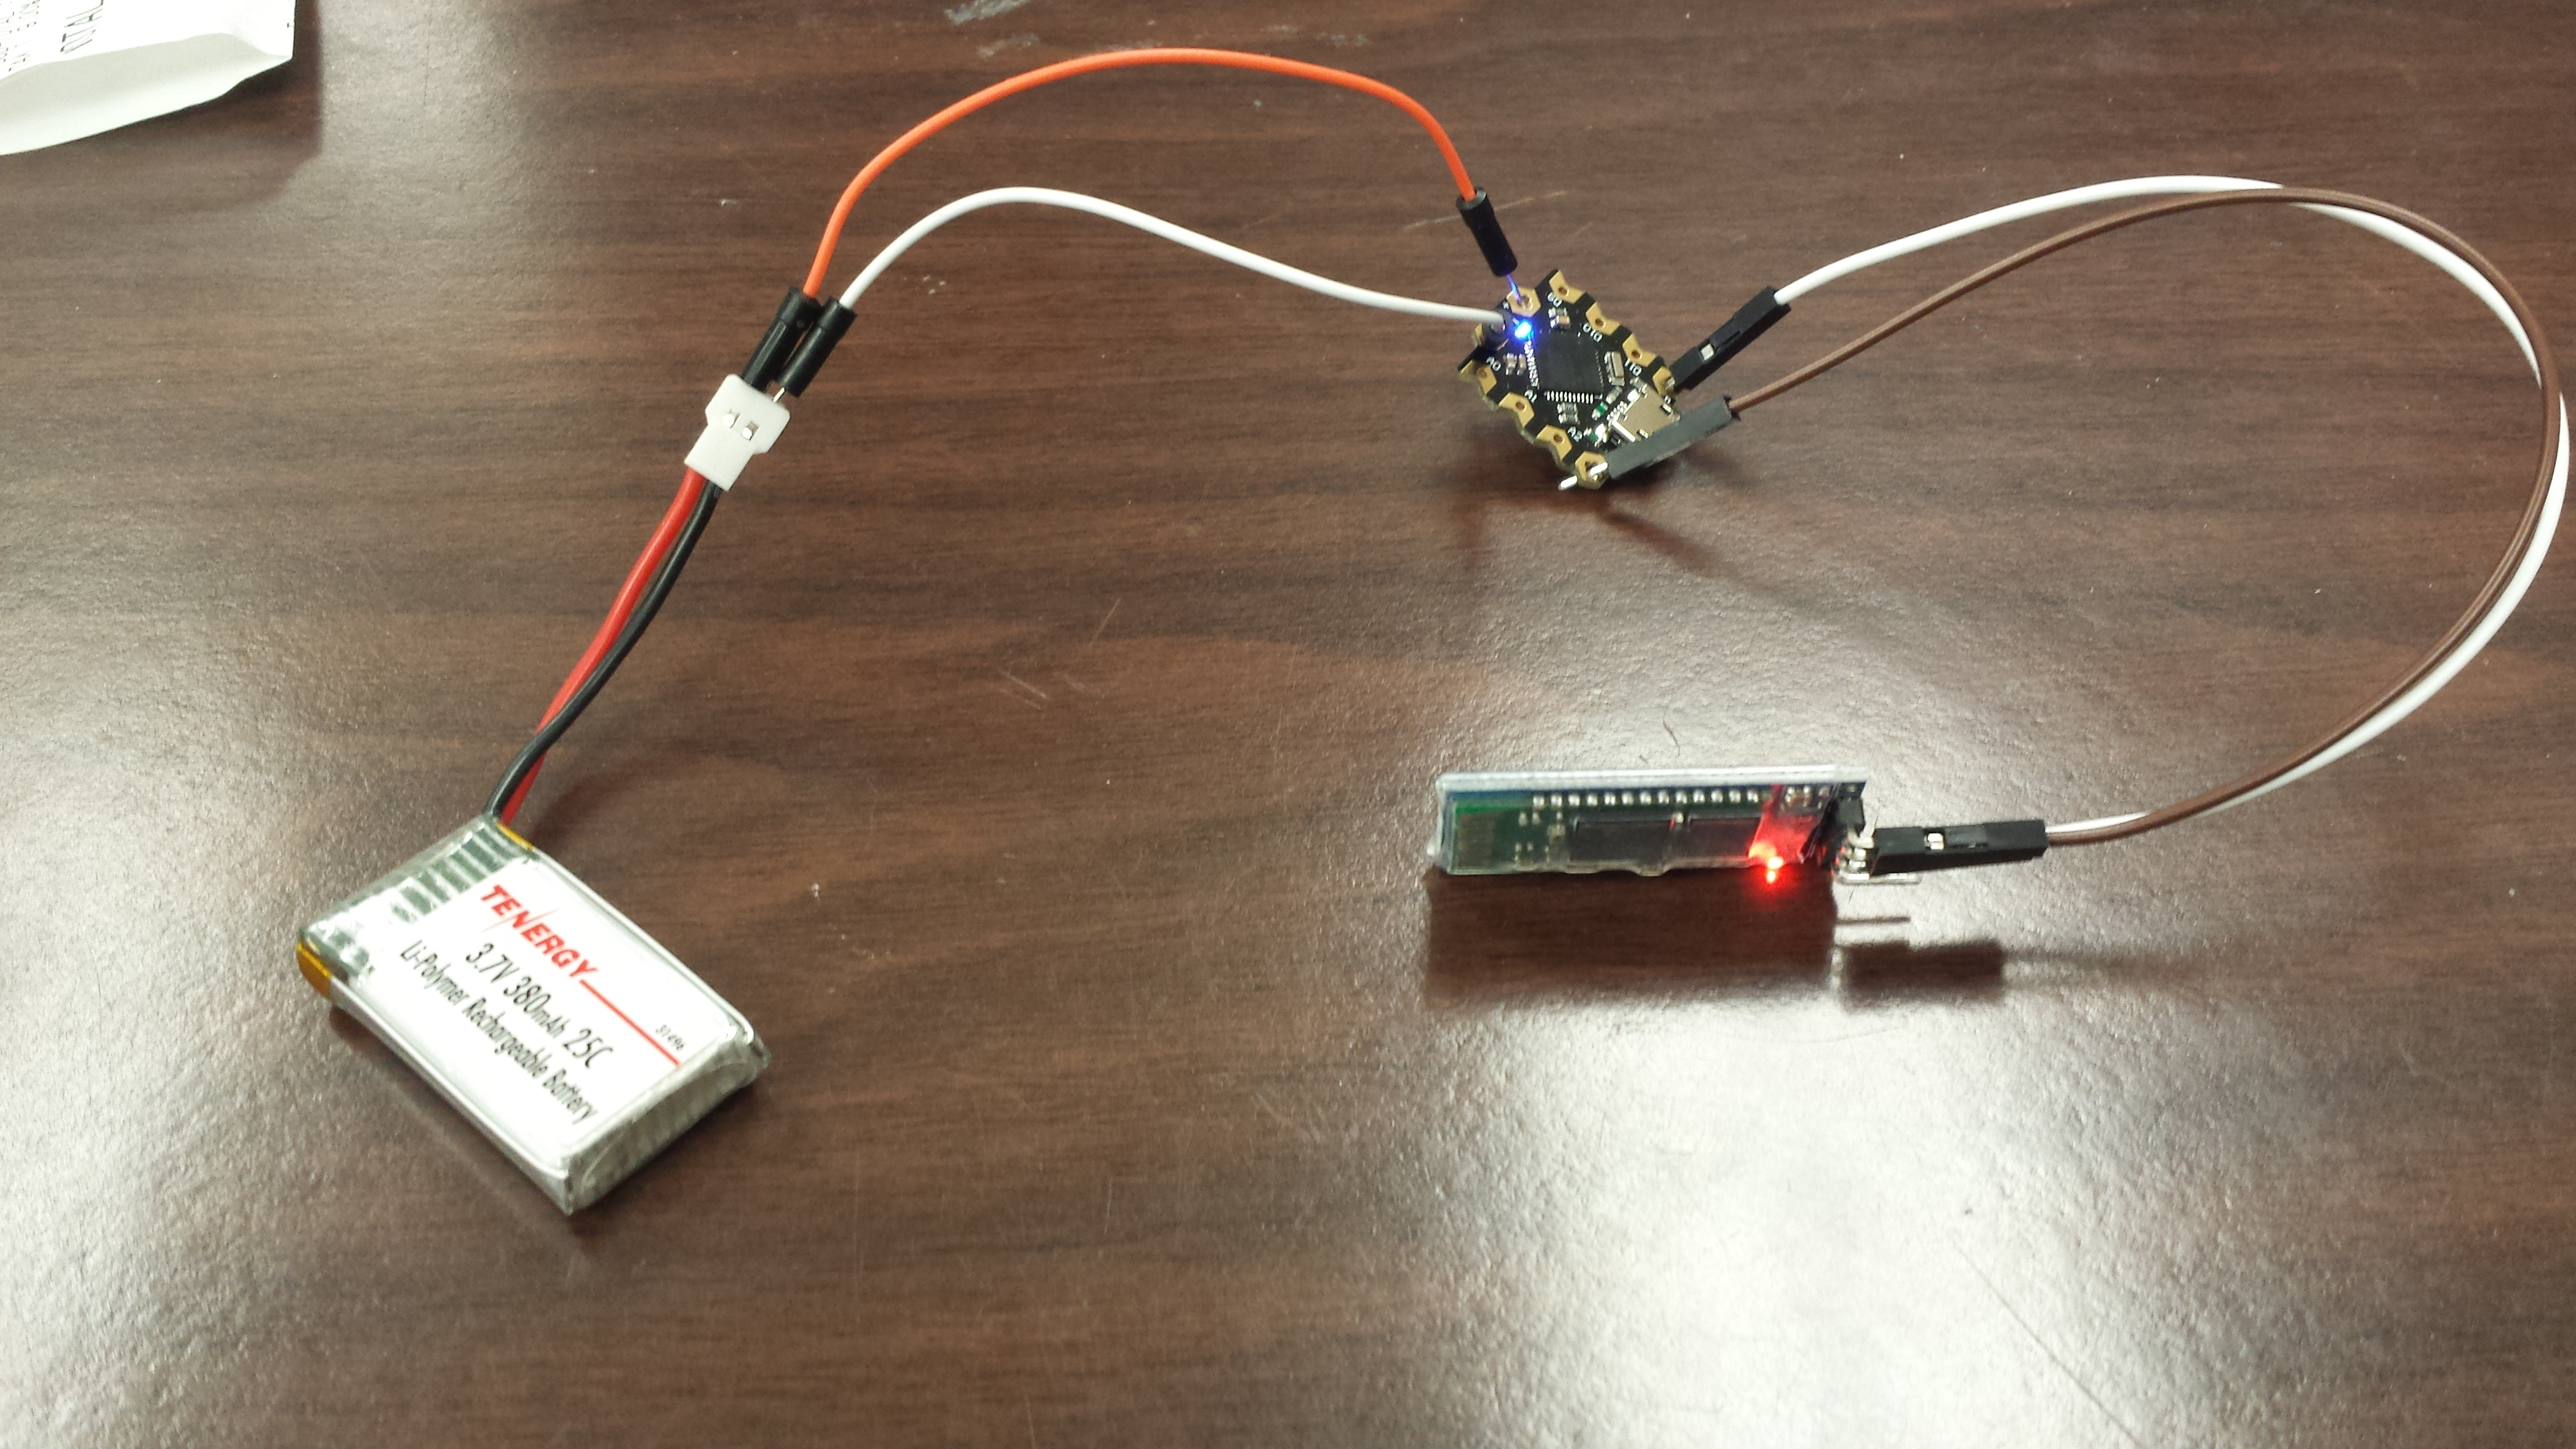 Picture of Powering Beetle and Bluetooth